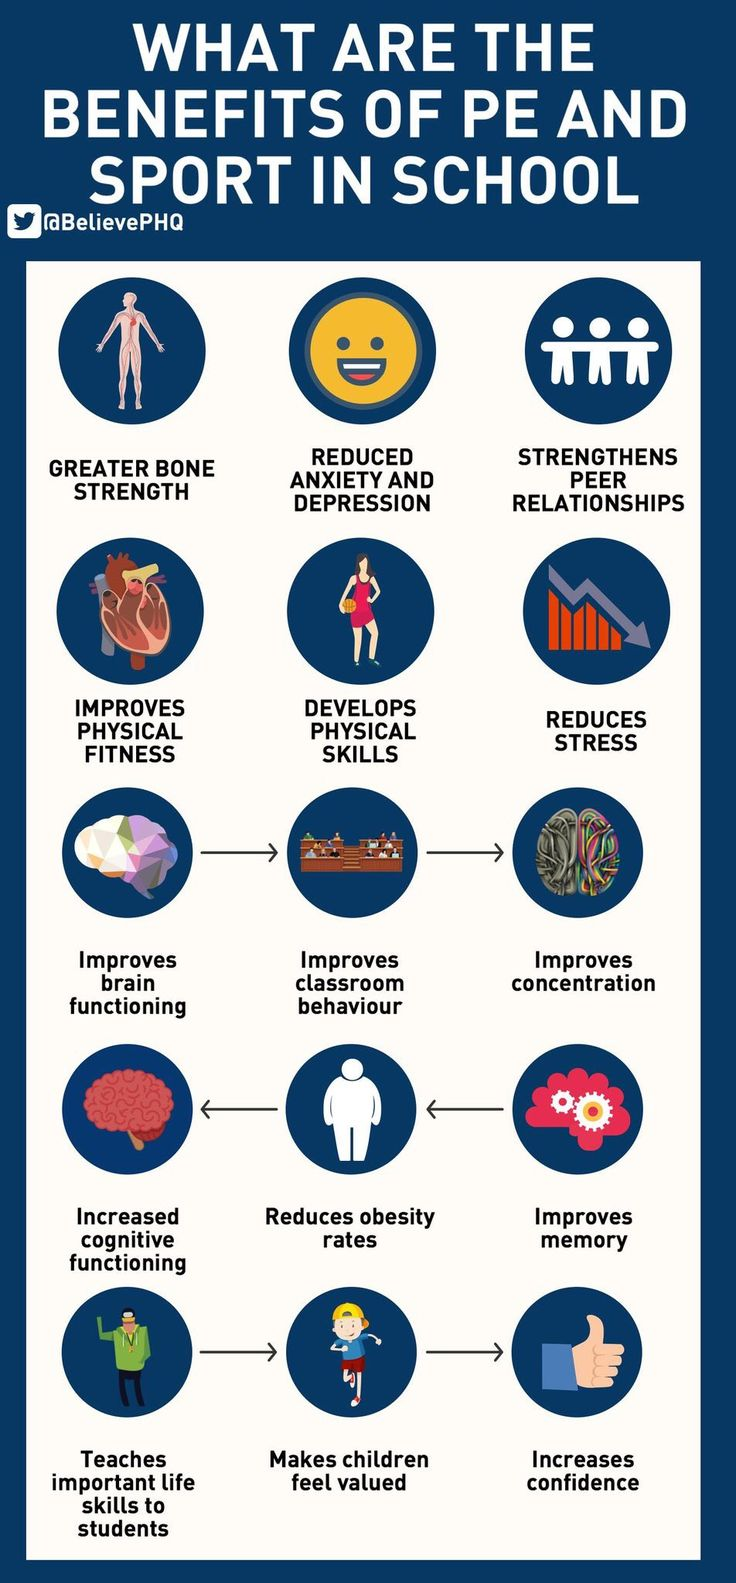 The Benefits of PE and Sports in School